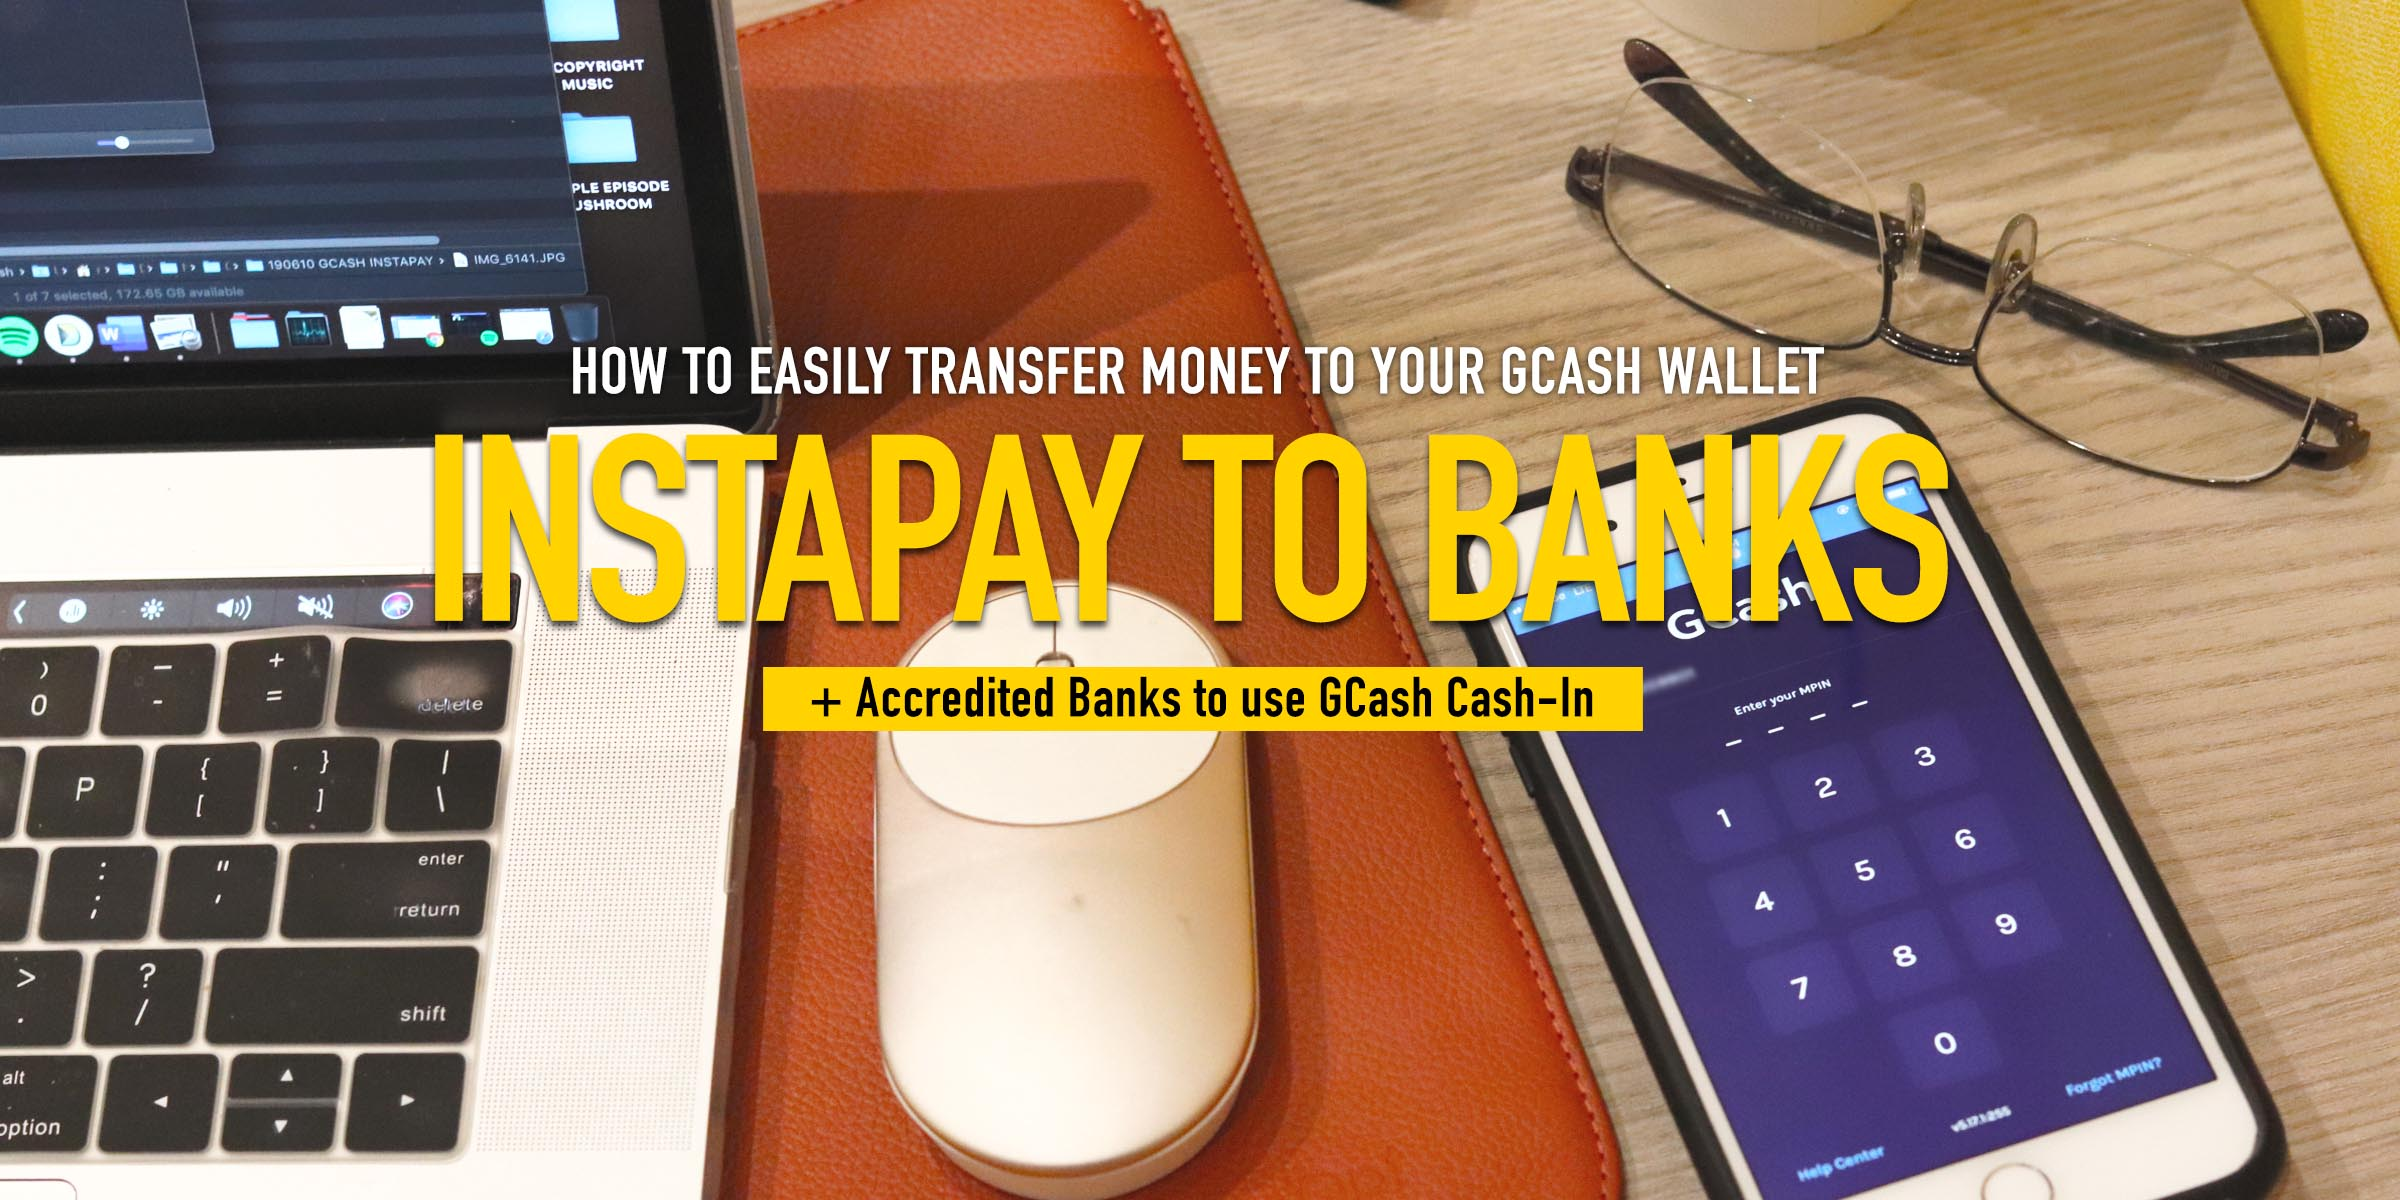 How to Easily Transfer Money via Instapay to Banks to your